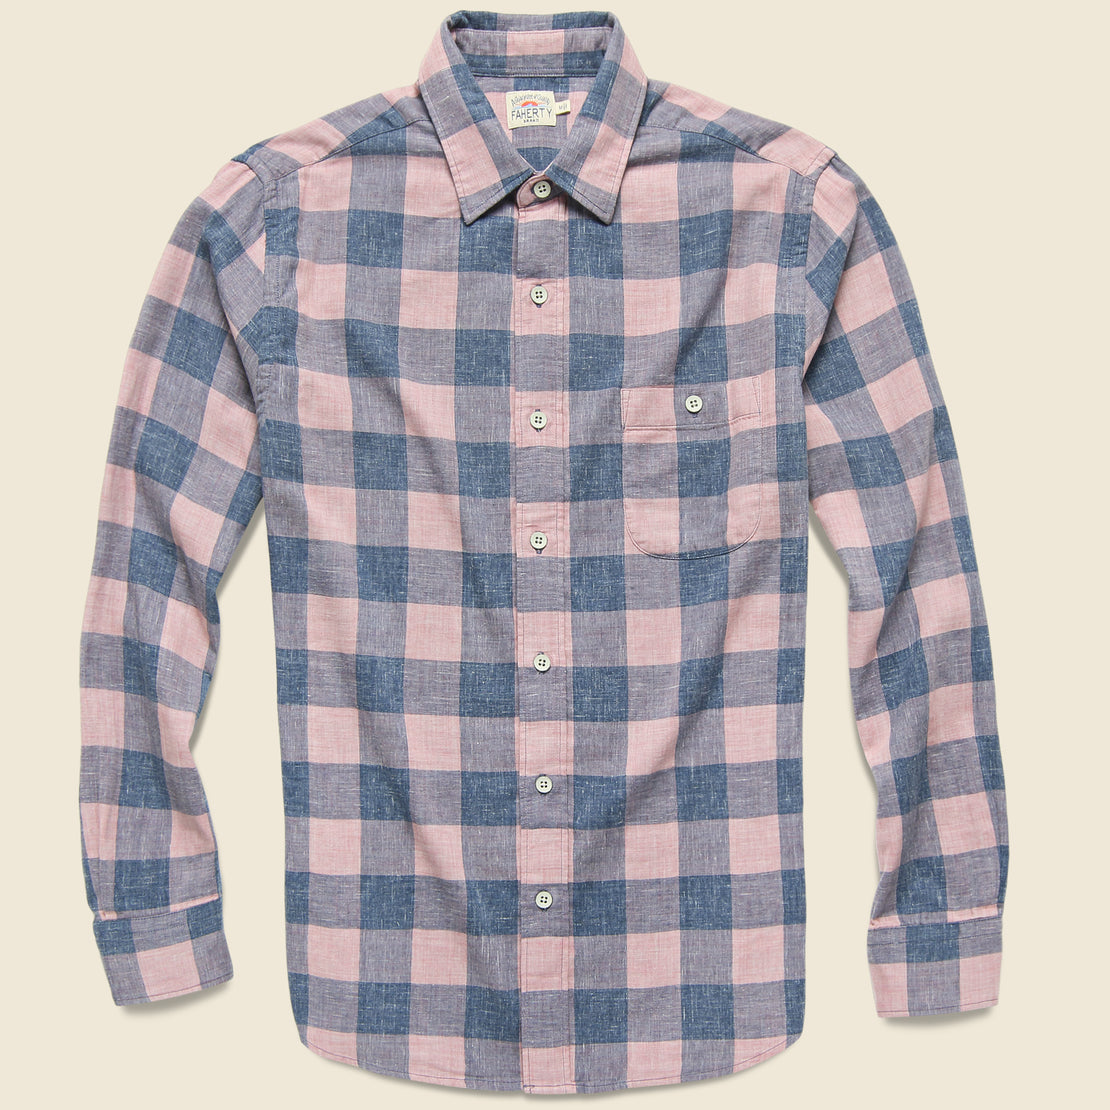 Faherty Doublecloth Seaview Shirt - Rose Buffalo Check